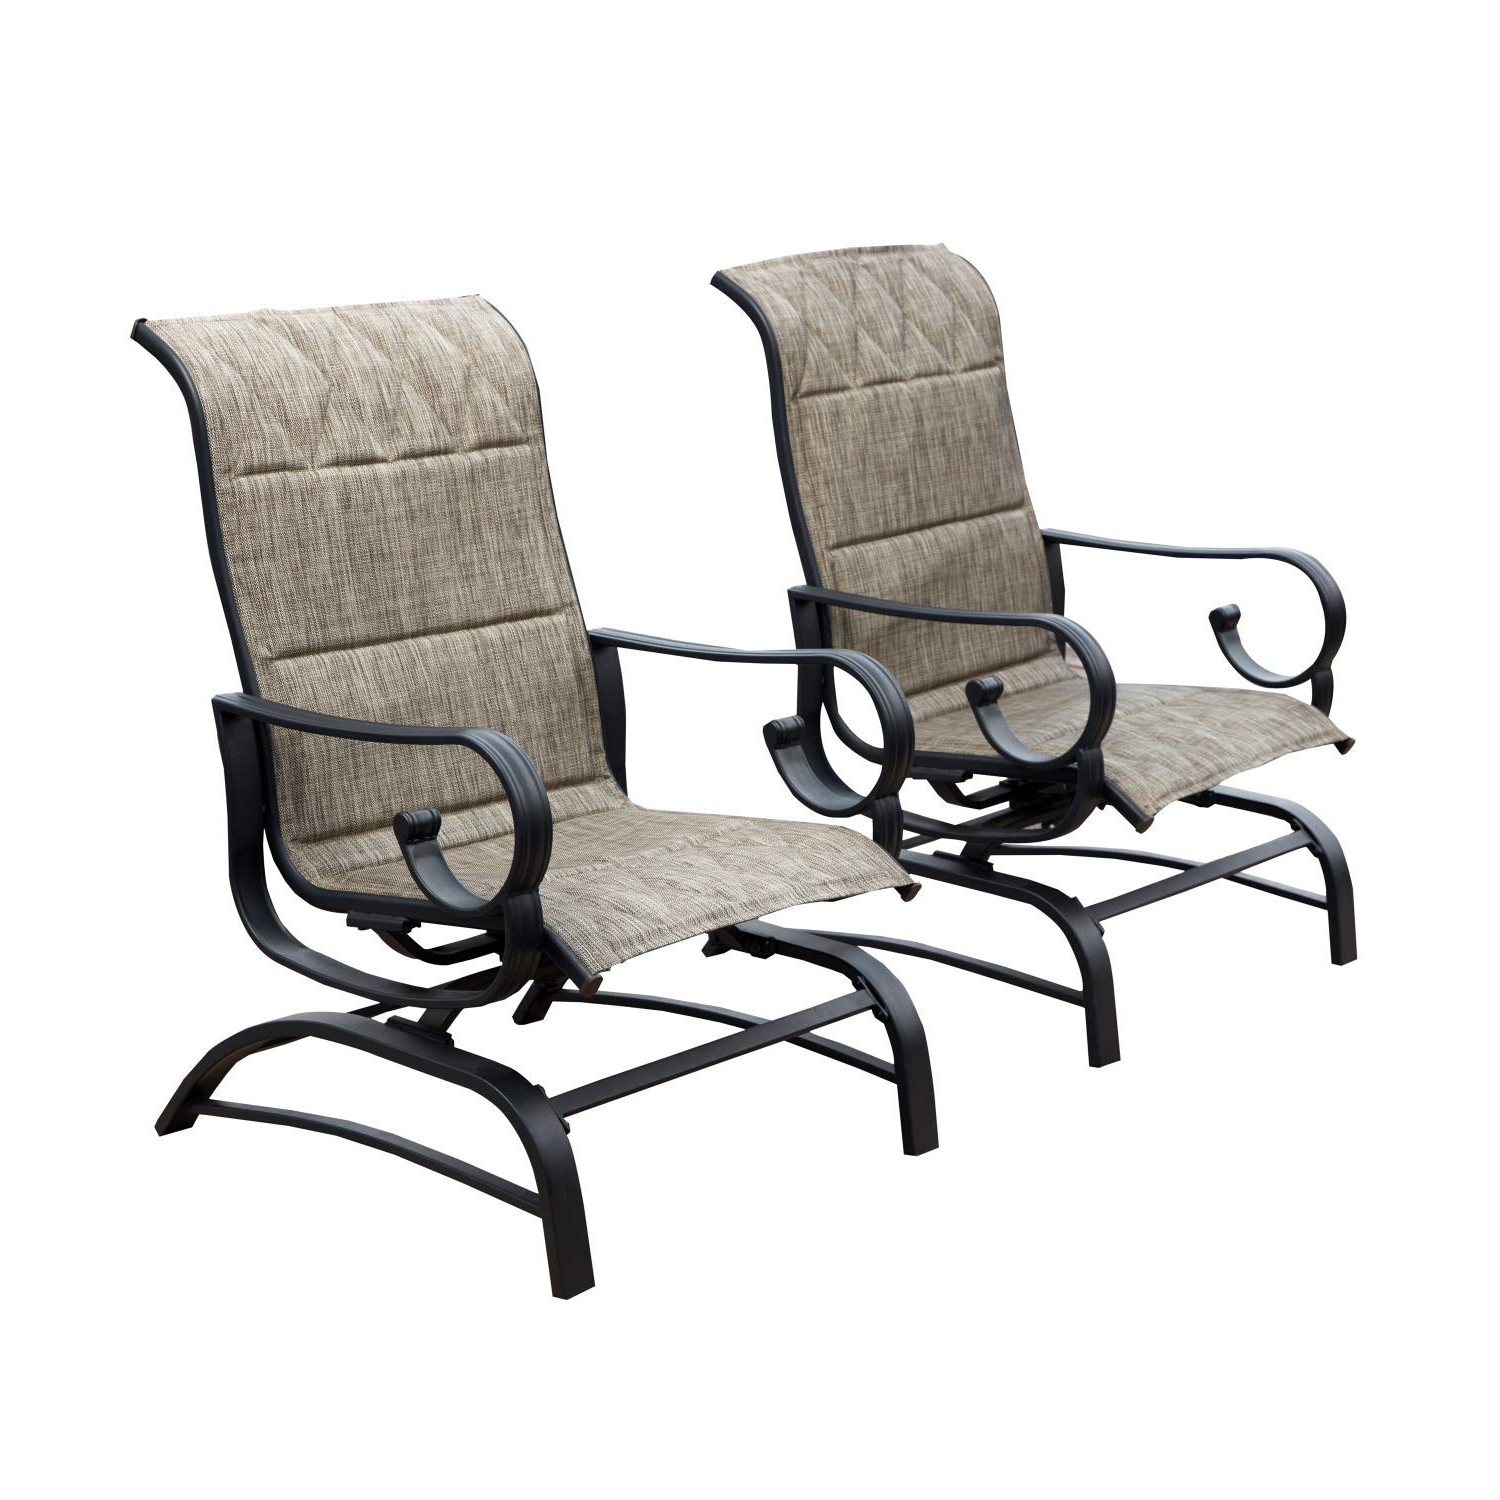 Lokatse Home Outdoor Patio Glider Chair Swing Furniture Seating Rocking Glider Chairs Set Of 2,grey Inside Newest Outdoor Patio Swing Glider Bench Chair S (View 16 of 30)